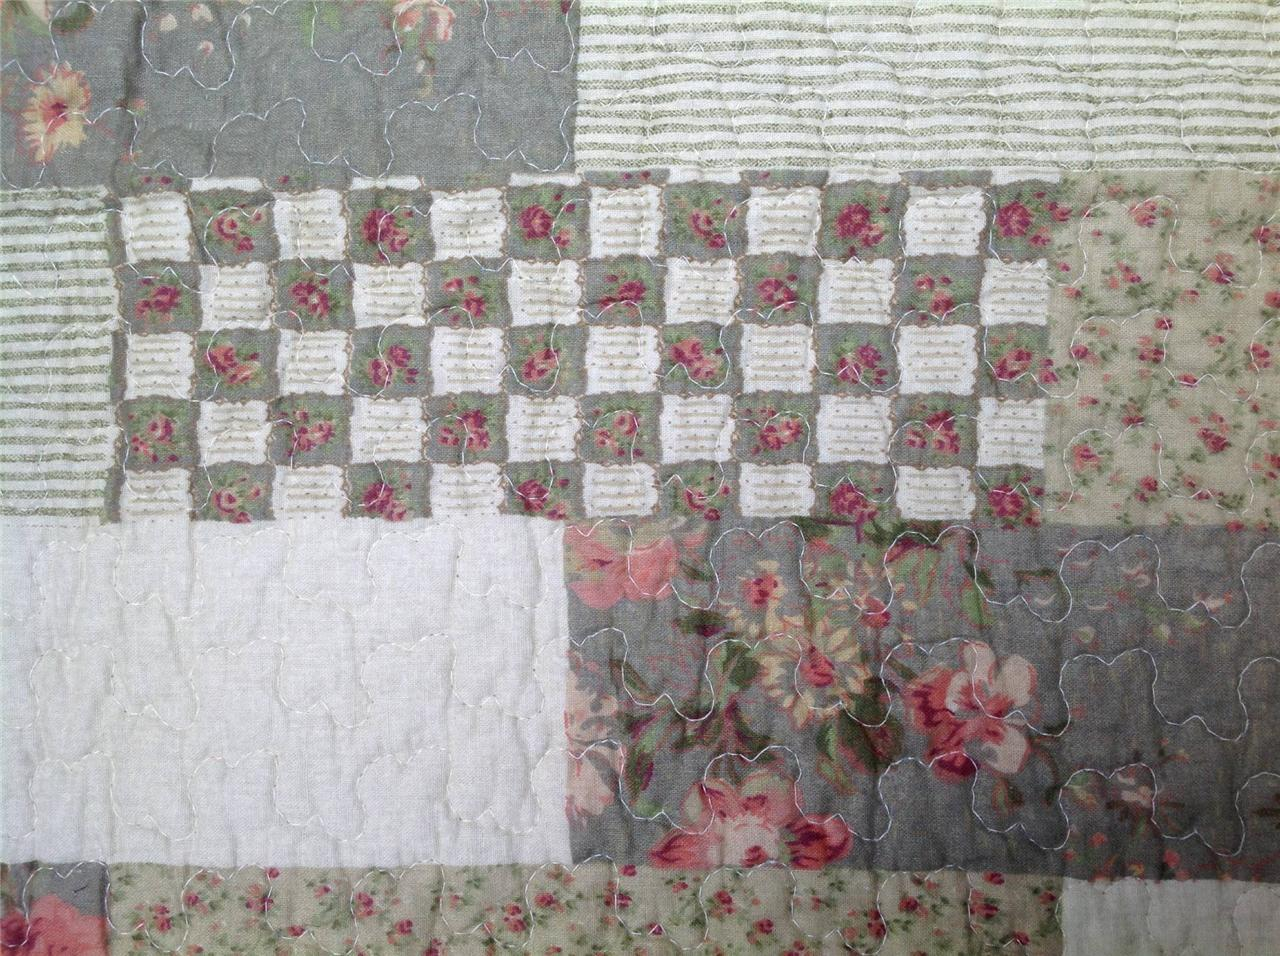 quilt patchwork tagesdecke landhausstil 170 x 230 cm ebay. Black Bedroom Furniture Sets. Home Design Ideas